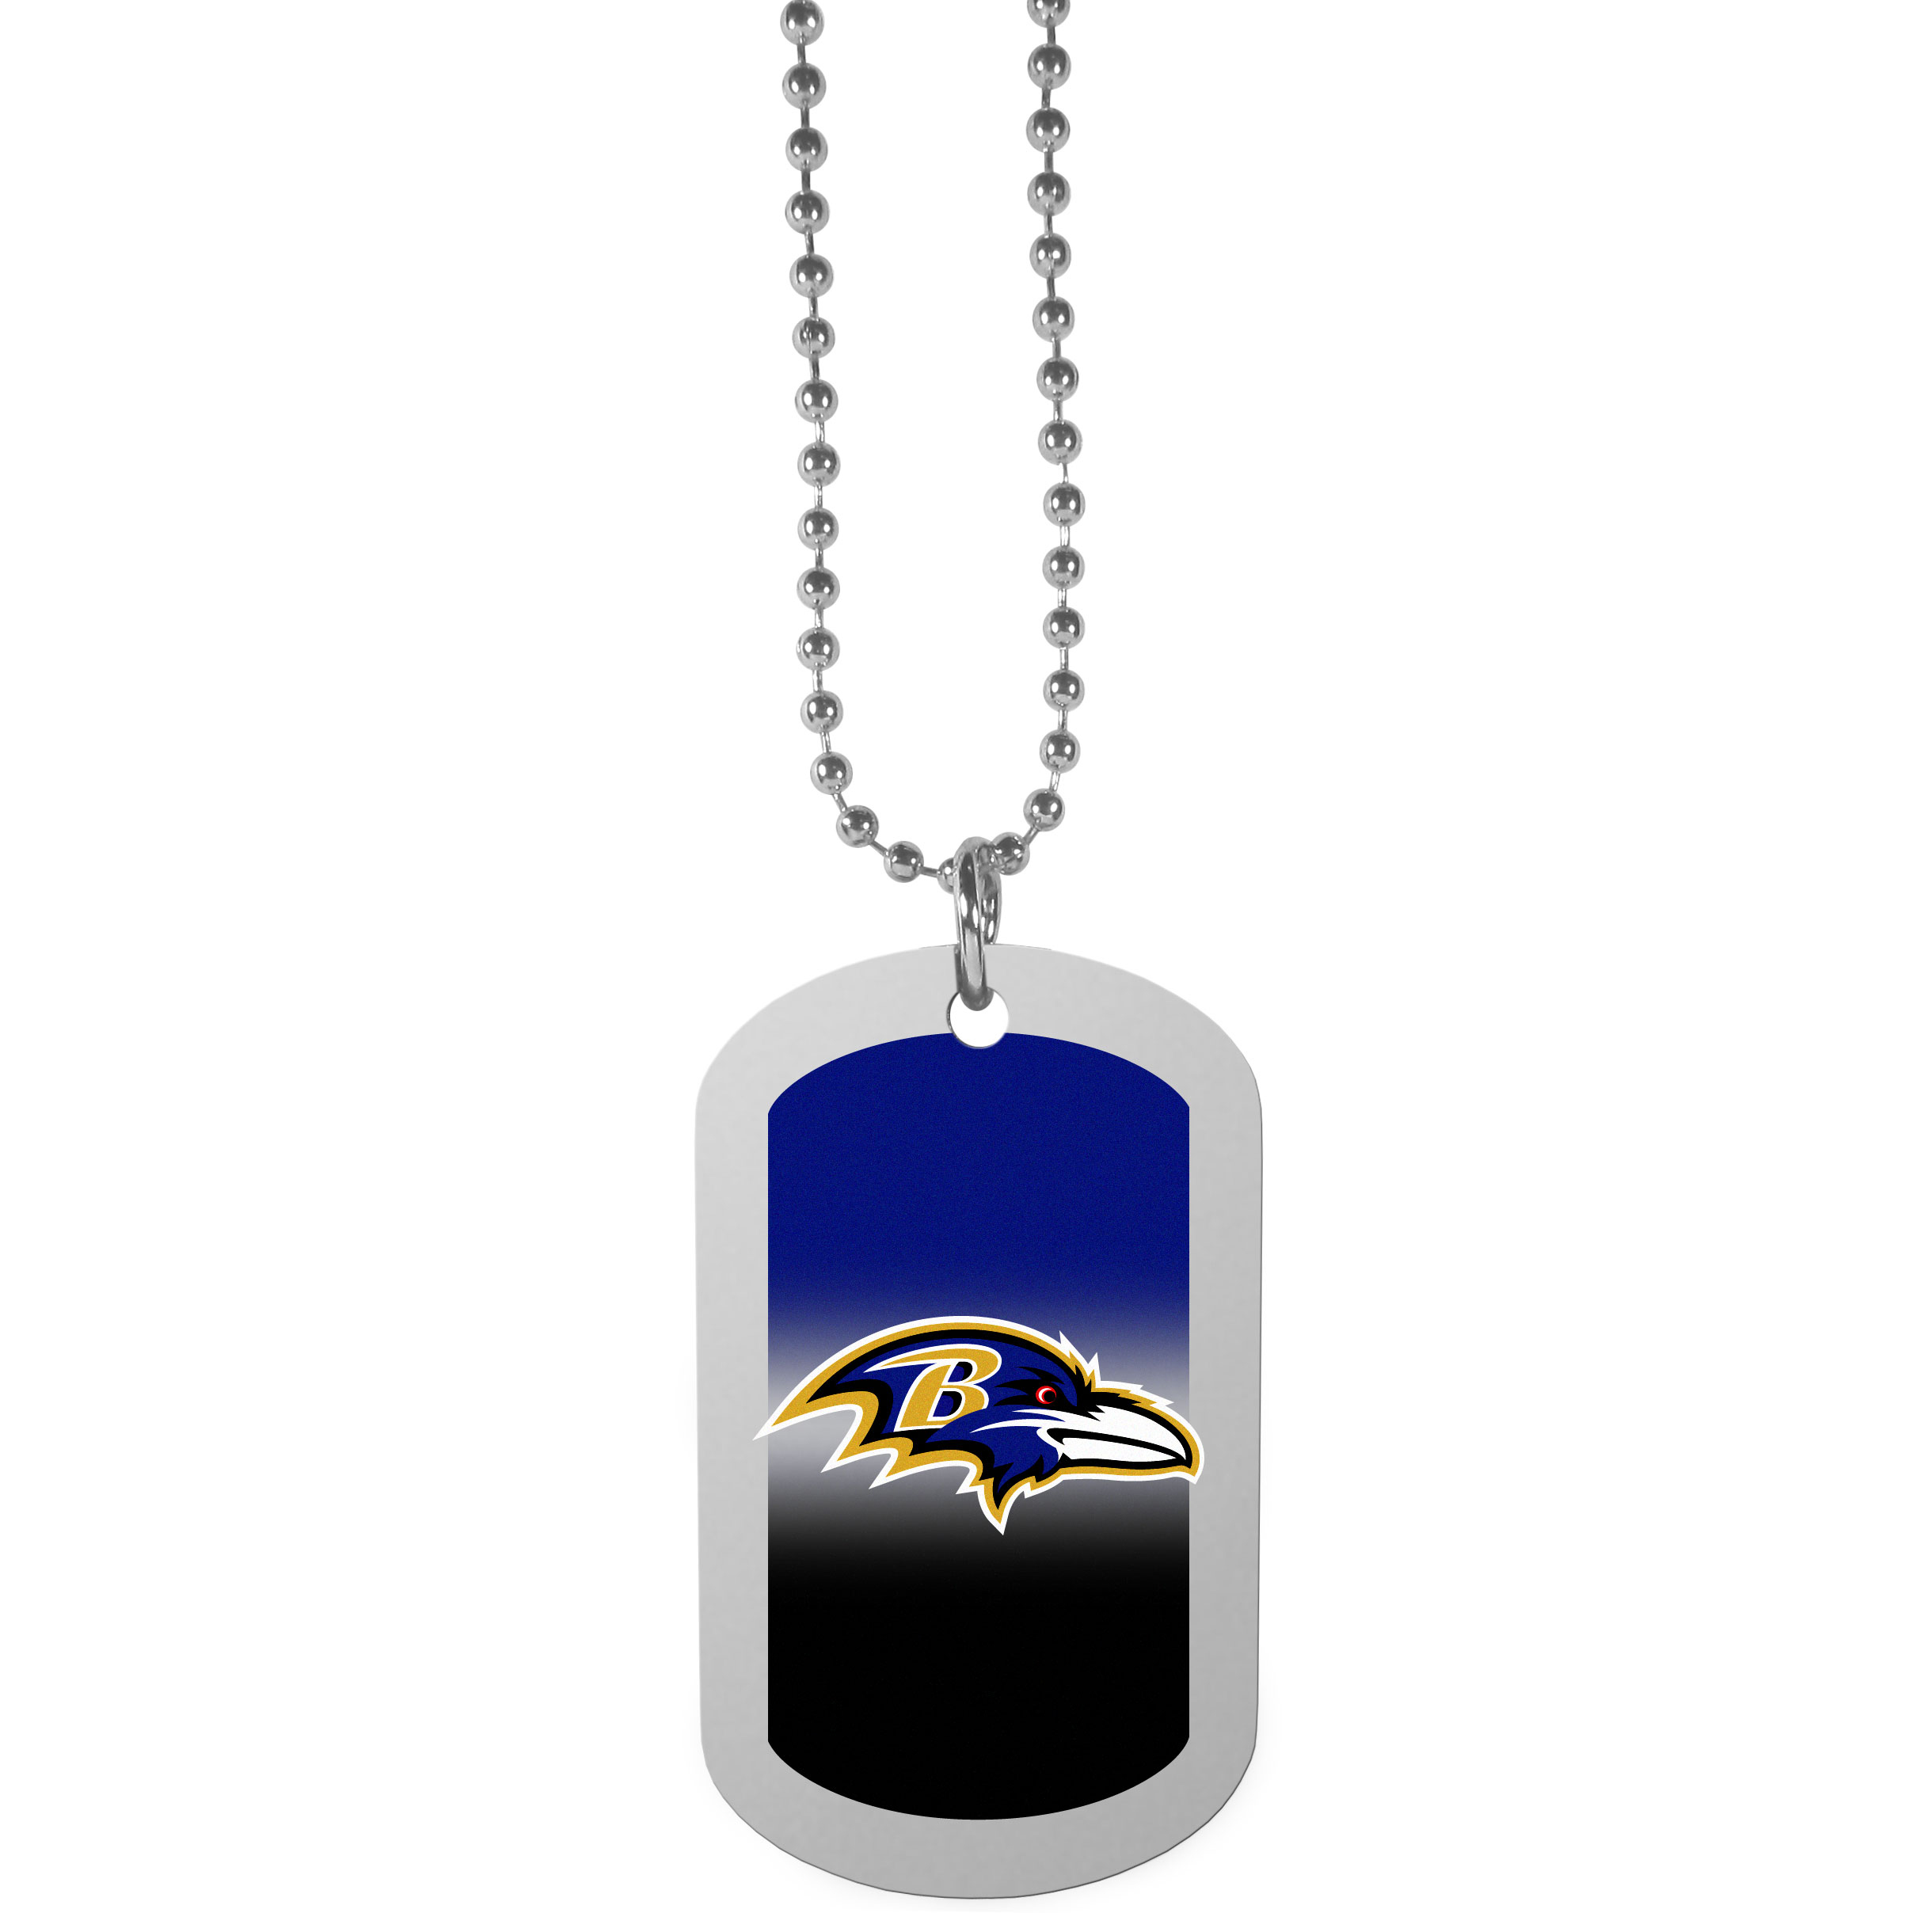 Baltimore Ravens Team Tag Necklace - Dog tag necklaces are a fashion statement that is here to stay. The sporty version of the classic tag features a gradient print in team colors featuring a full color team logo over a high polish tag to create a bold and sporty look. The tag comes on a 26 inch ball chain with a ball and joint clasp. Any Baltimore Ravens would be proud to wear this attractive fashion accessory.